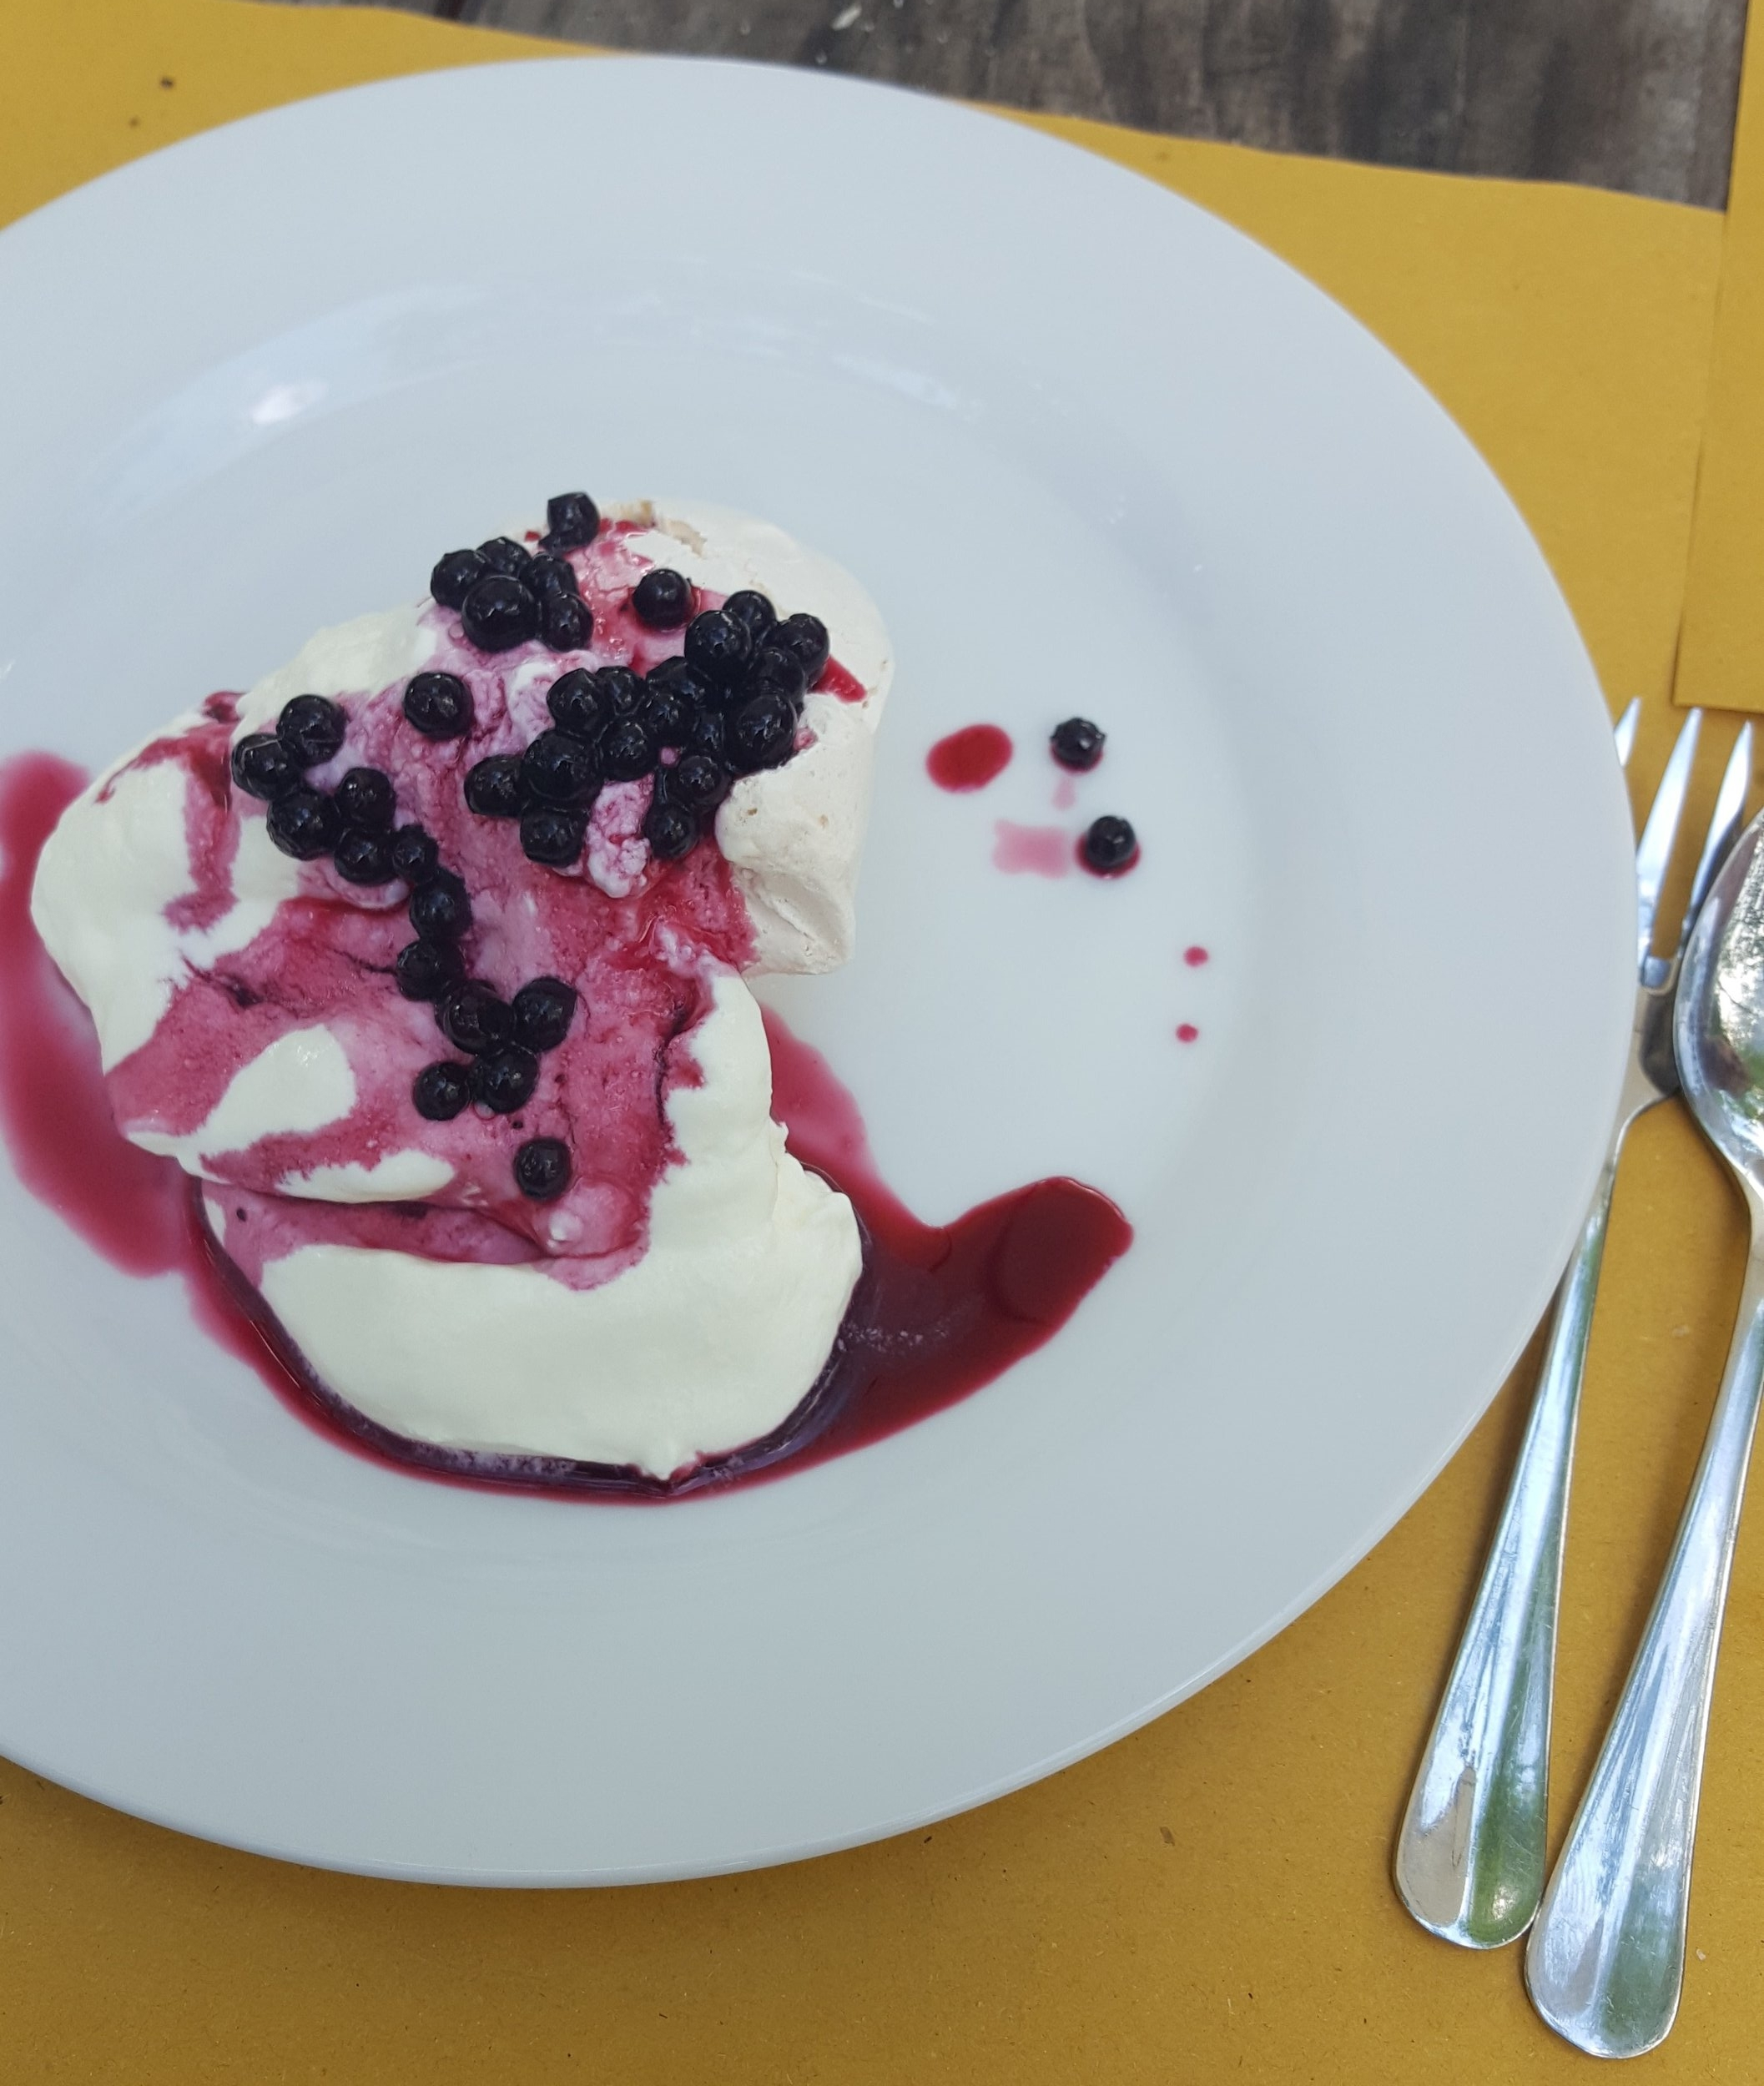 A perfect lunch dessert at Dondoli.  Meringue, cream and fresh wild blueberries!